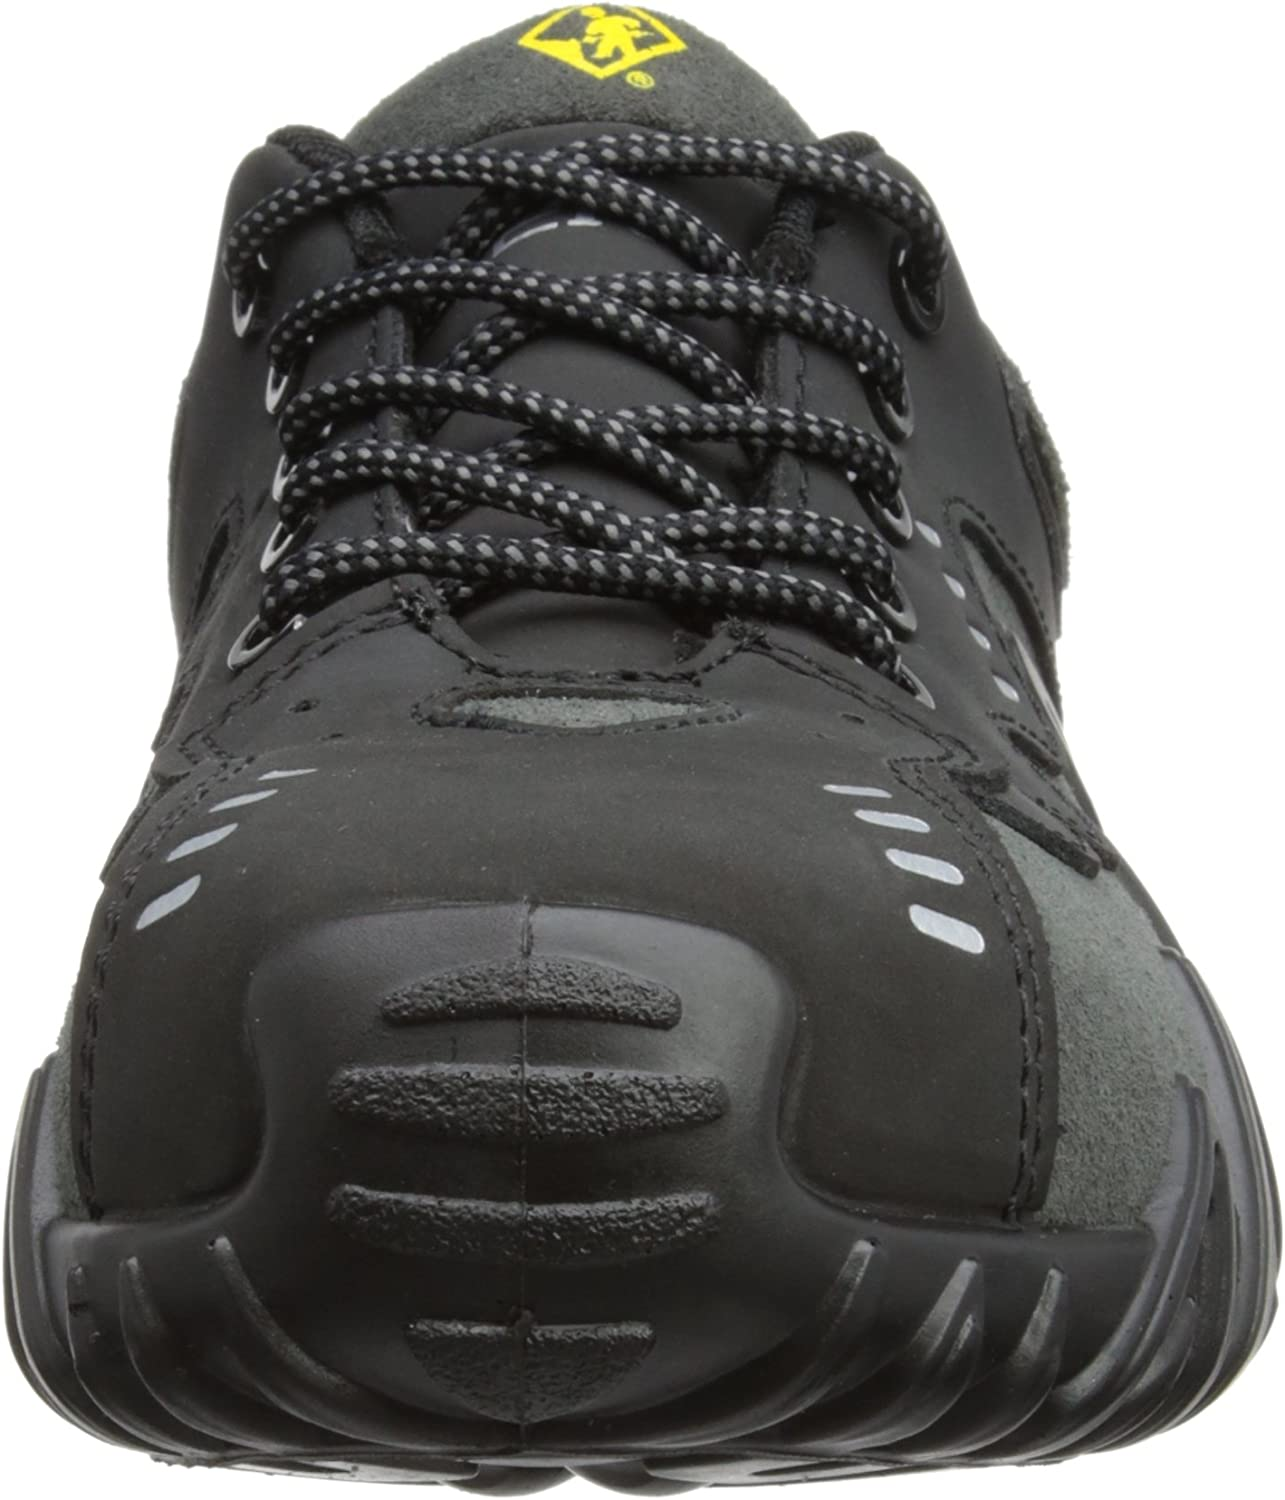 Terra Mens Spider Safety Trainers